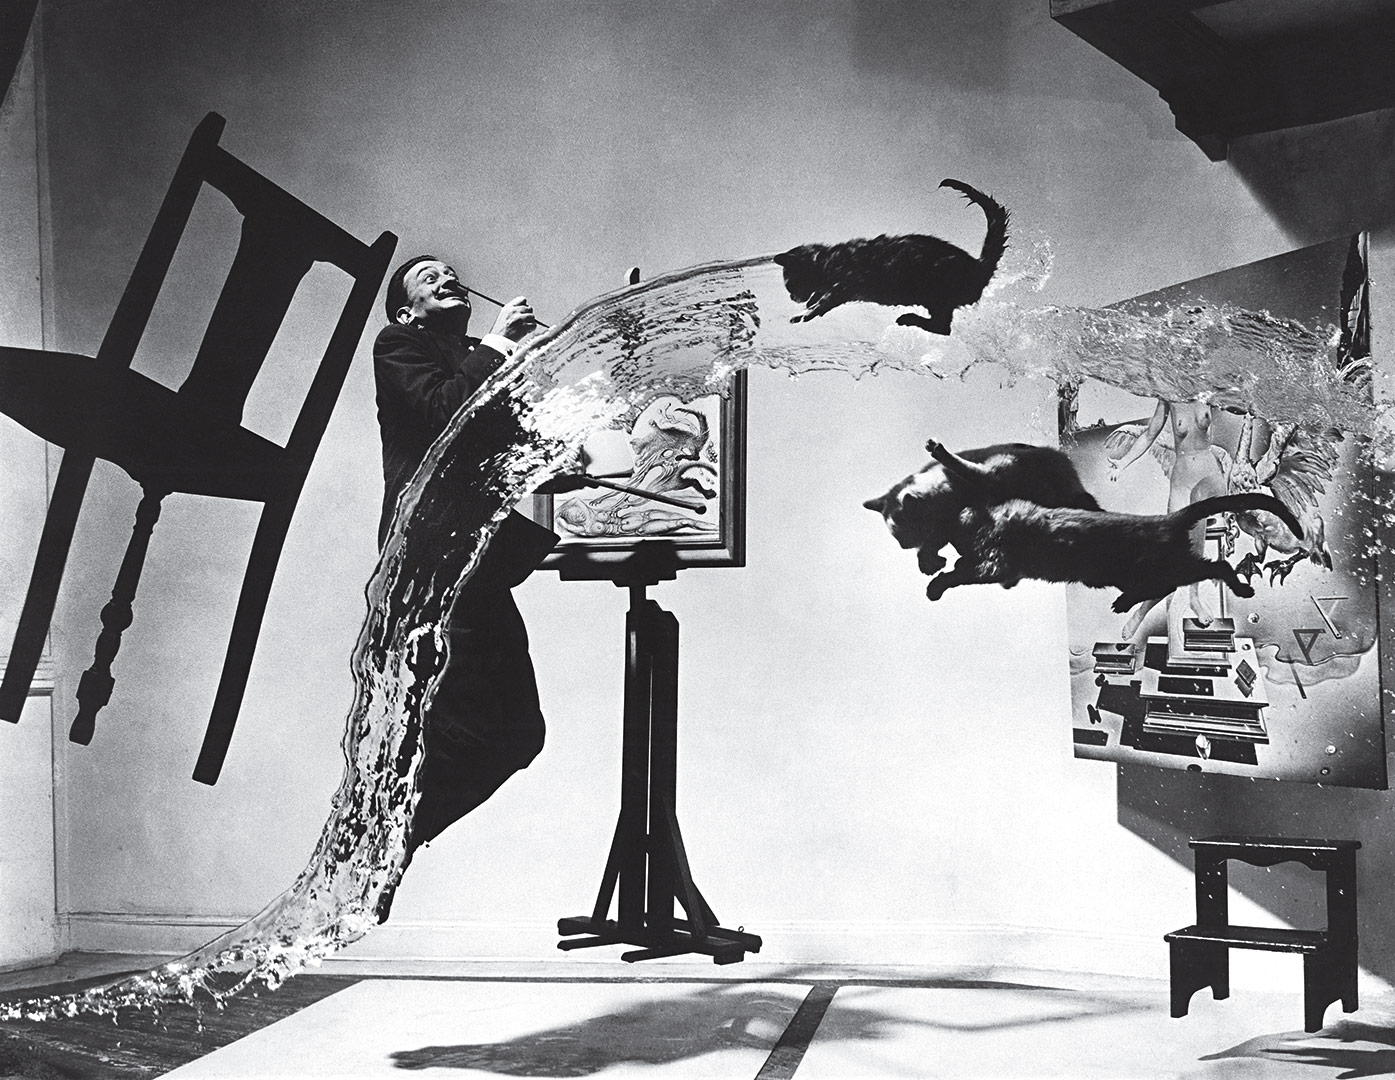 time-100-influential-photos-philippe-halsman-dali-atomicus-40